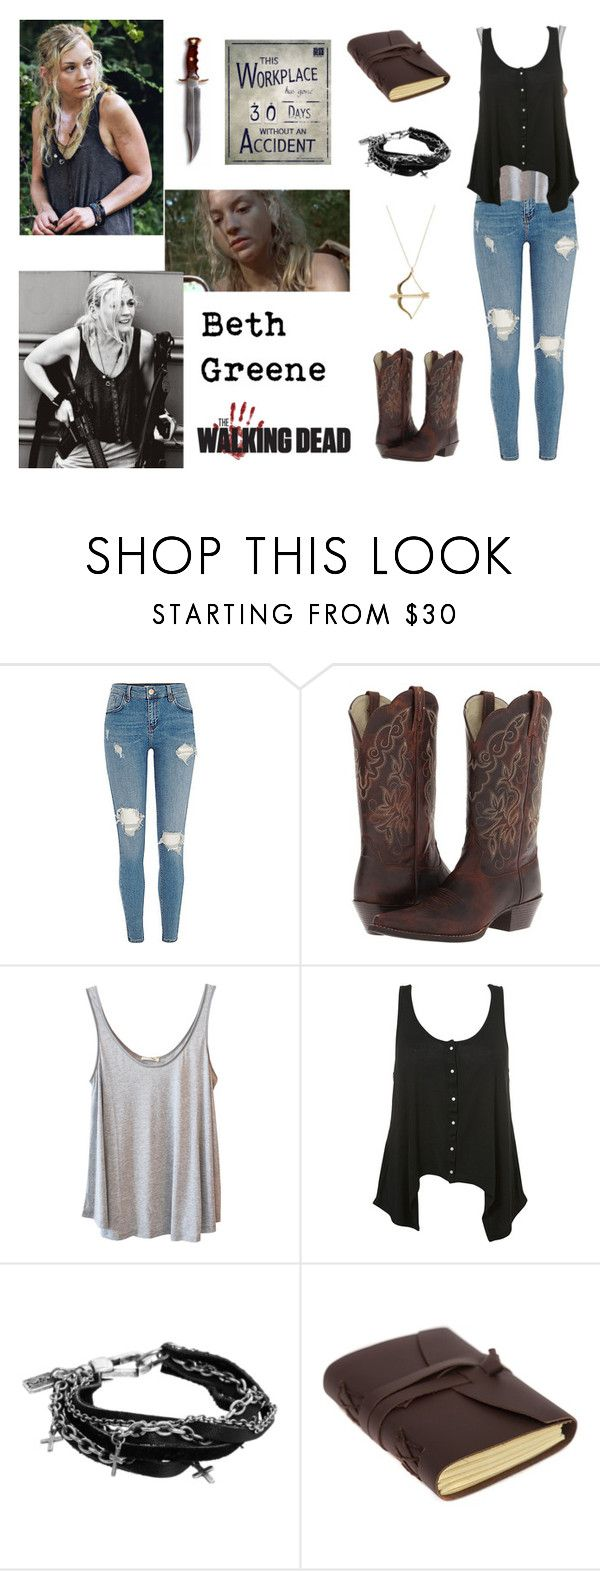 """""""Beth Greene / The Walking Dead / TWD / Zombie Apocalypse"""" by heavymetalvampirequeen ❤ liked on Polyvore featuring Ariat, American Vintage, Sydney Evan and Religion Clothing"""